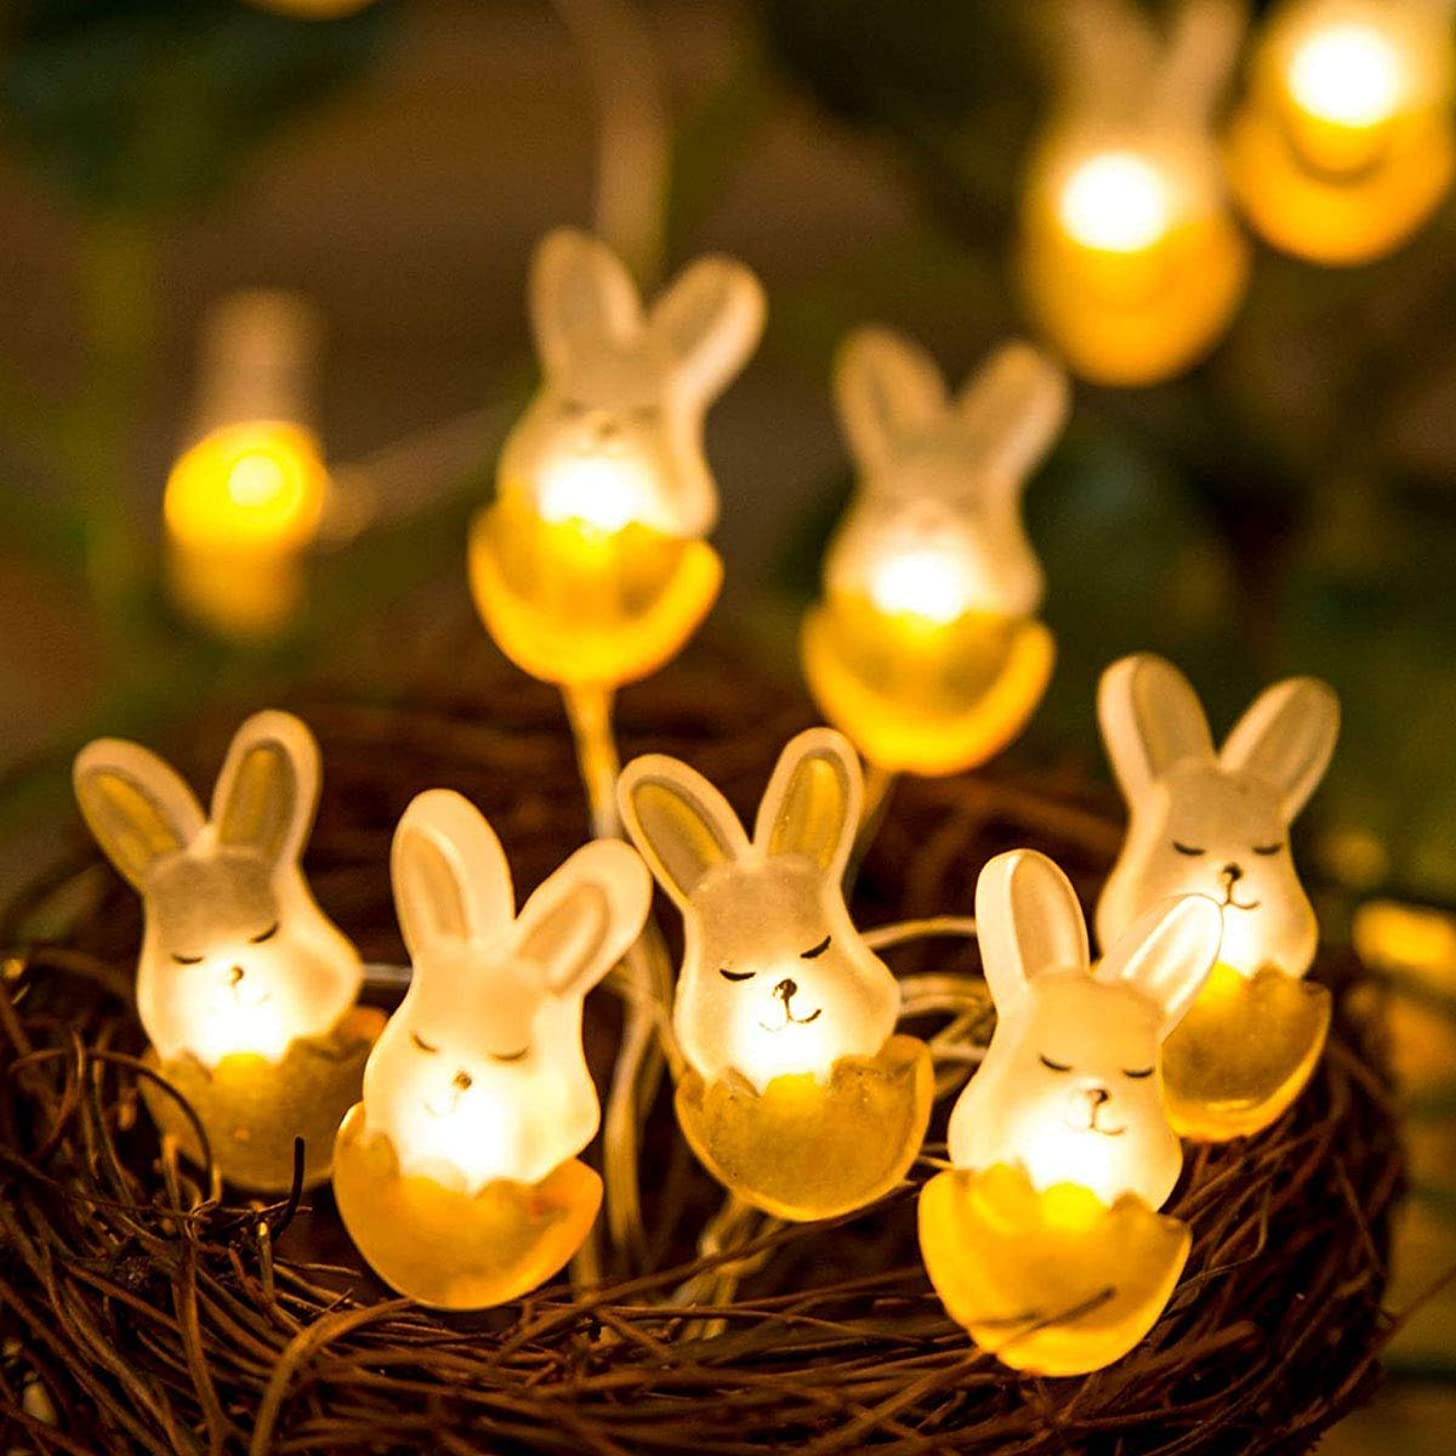 WONFAST Easter Decoration Lights, 10ft 30 LEDs Rabbit Bunny Easter Copper Wire Lights String Battery-Operated for Easter Show Bedroom Wall Balcony Garden DIY Pary Home Décor(Warm White)